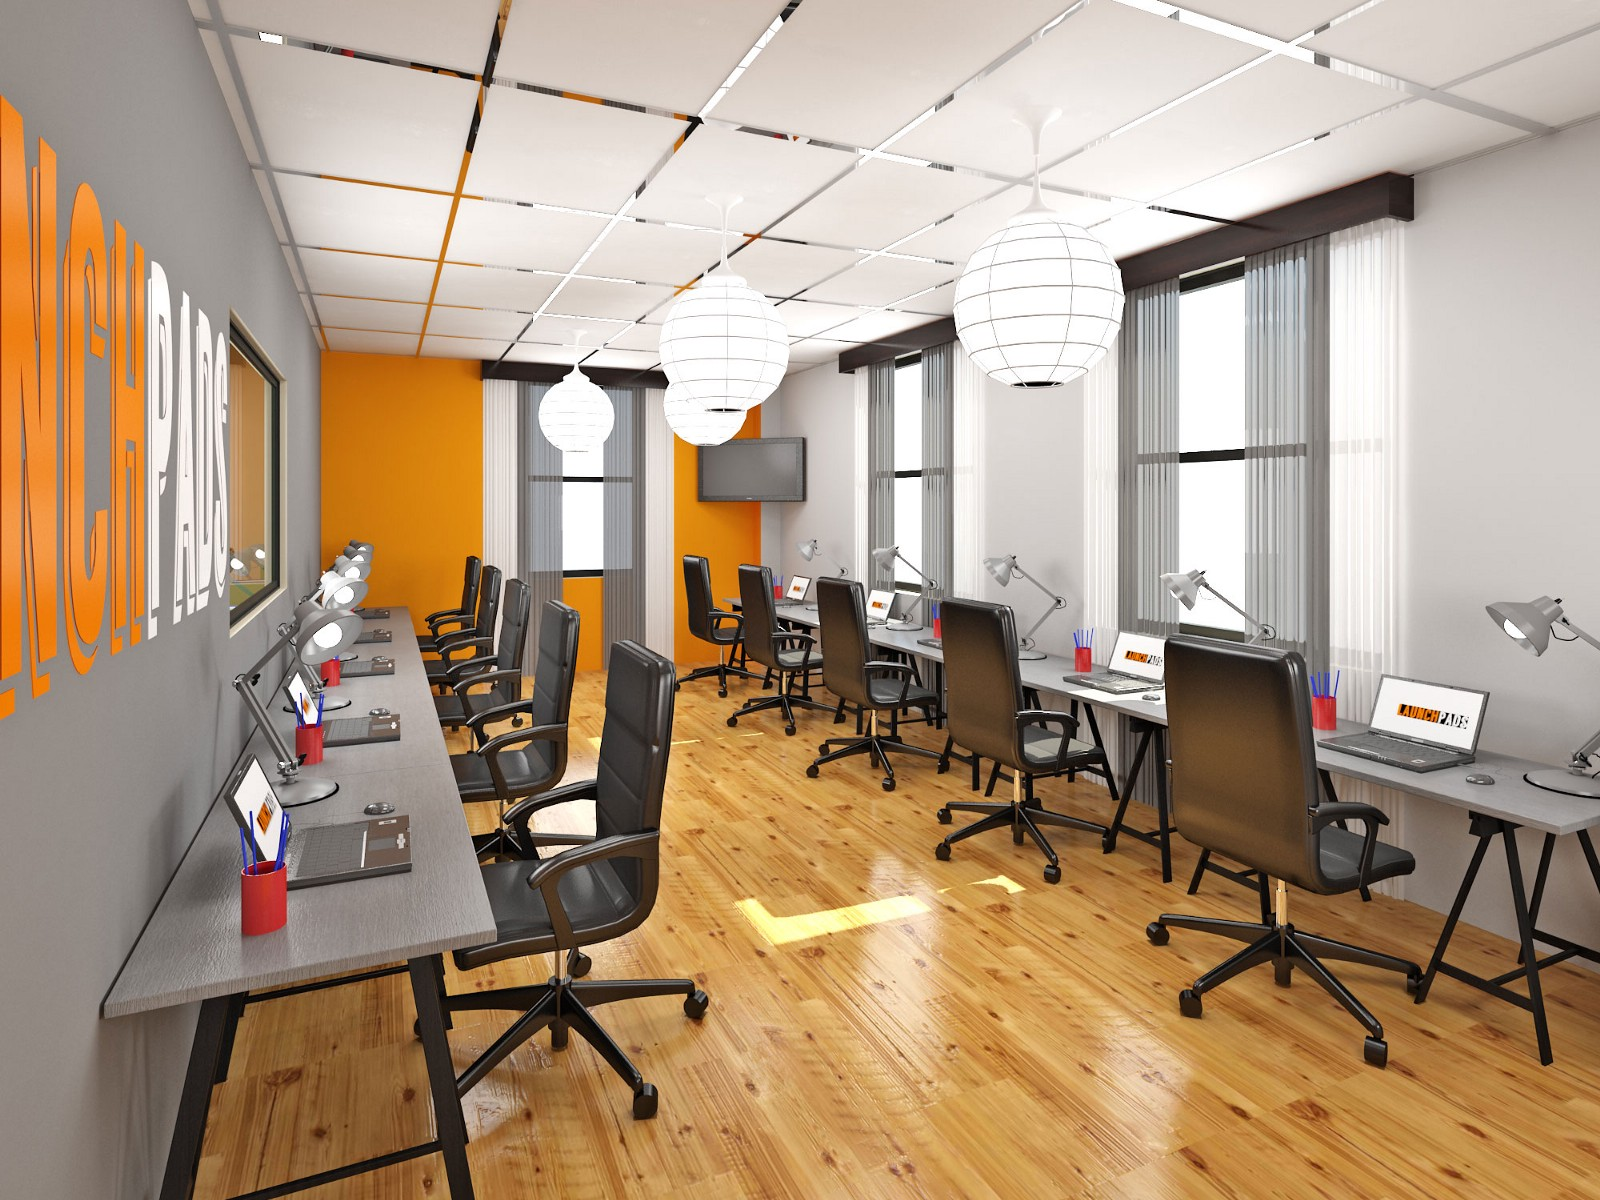 St. George-based LaunchPads Offers Communal Work Space for Startups ...